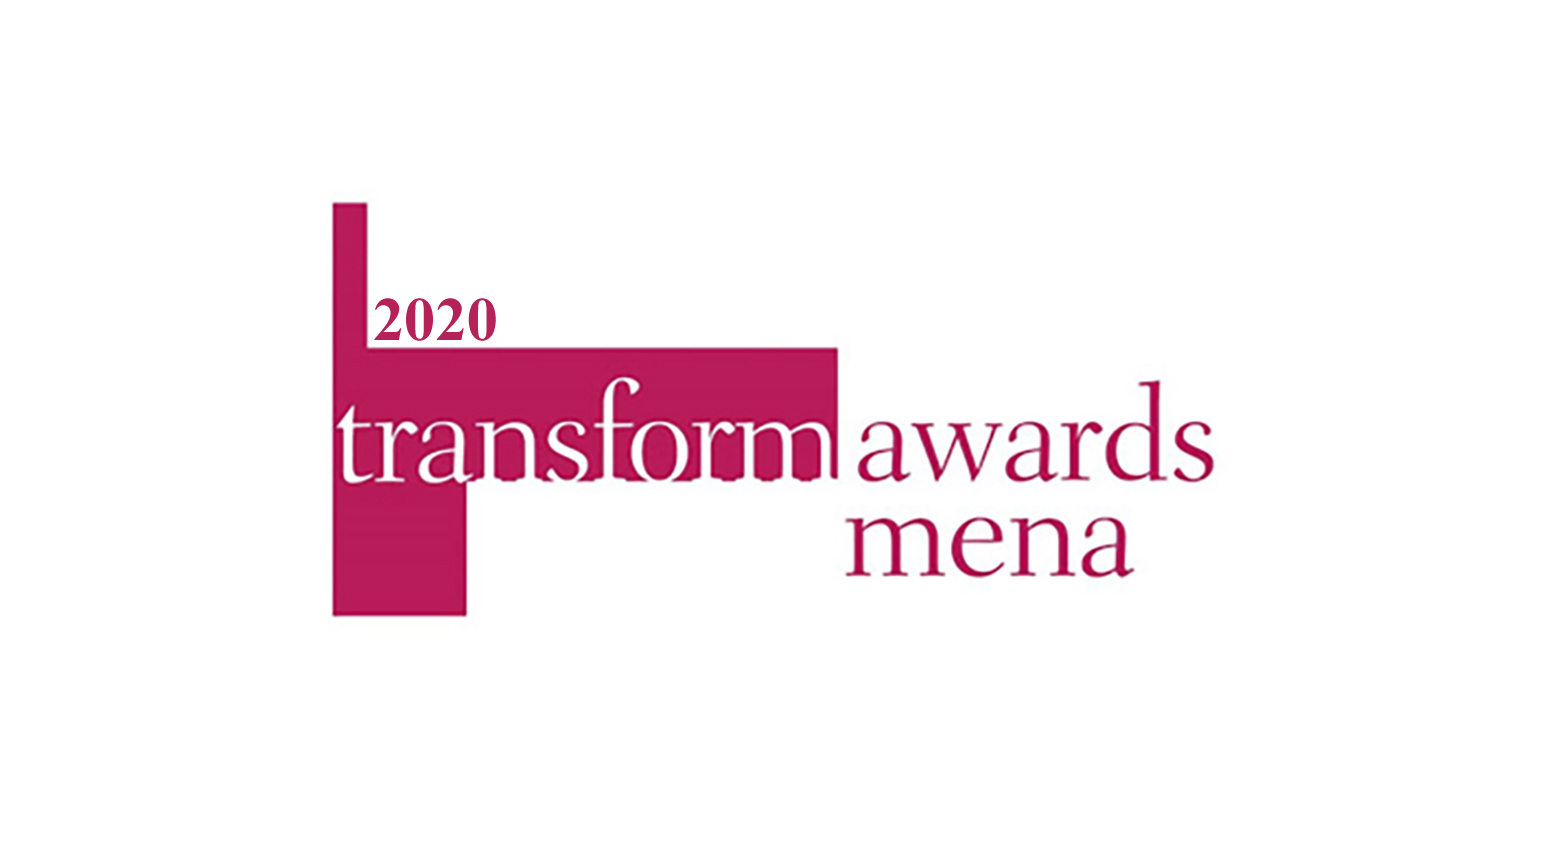 James-Shortlisted-Transform-Awards-MENA-2020 Branding Agency